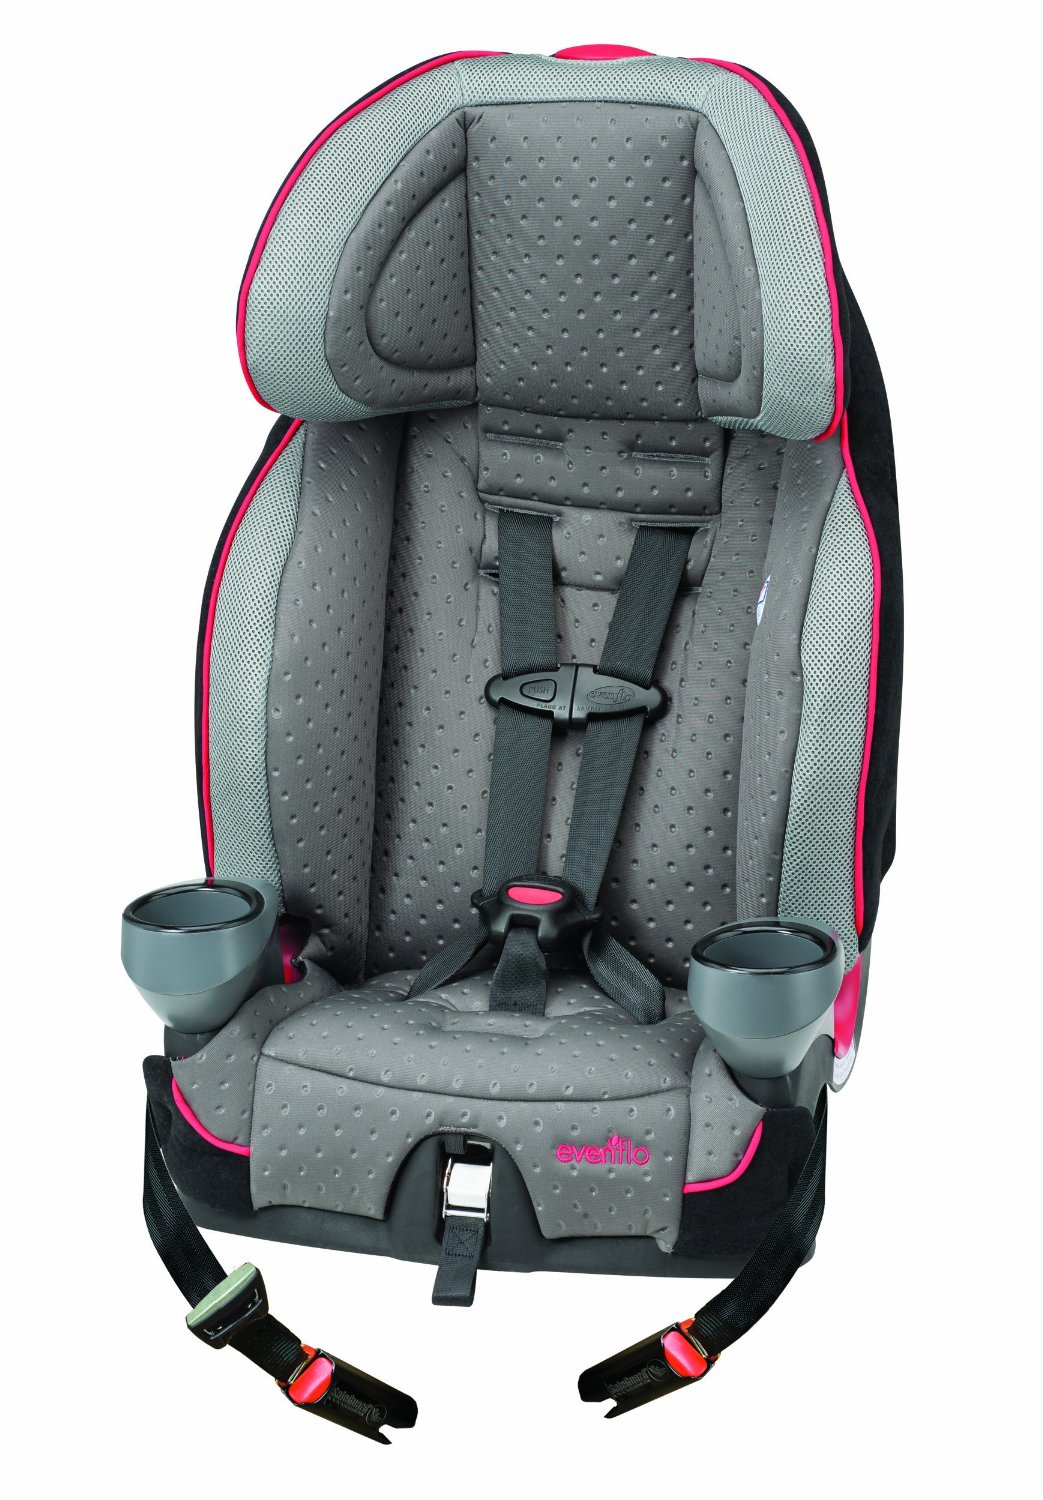 evenflo securekid lx kohl